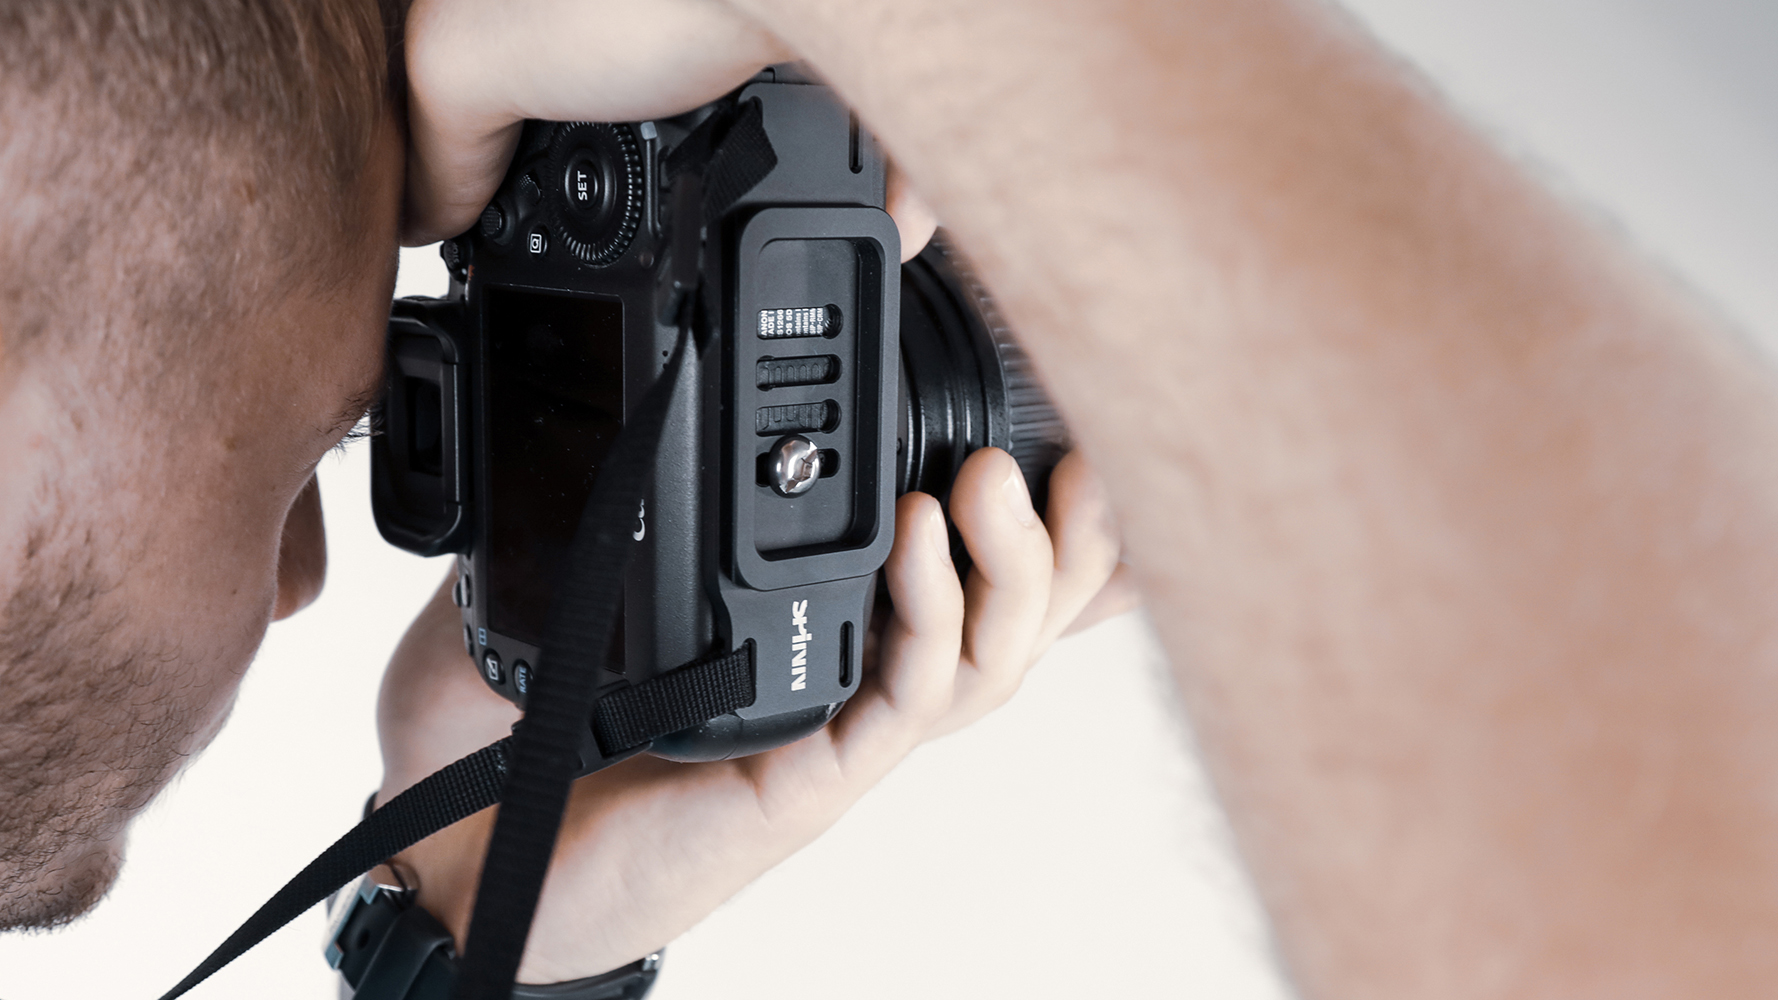 SPINN carrying system aims to reinvent the common camera strap | Digital Camera World